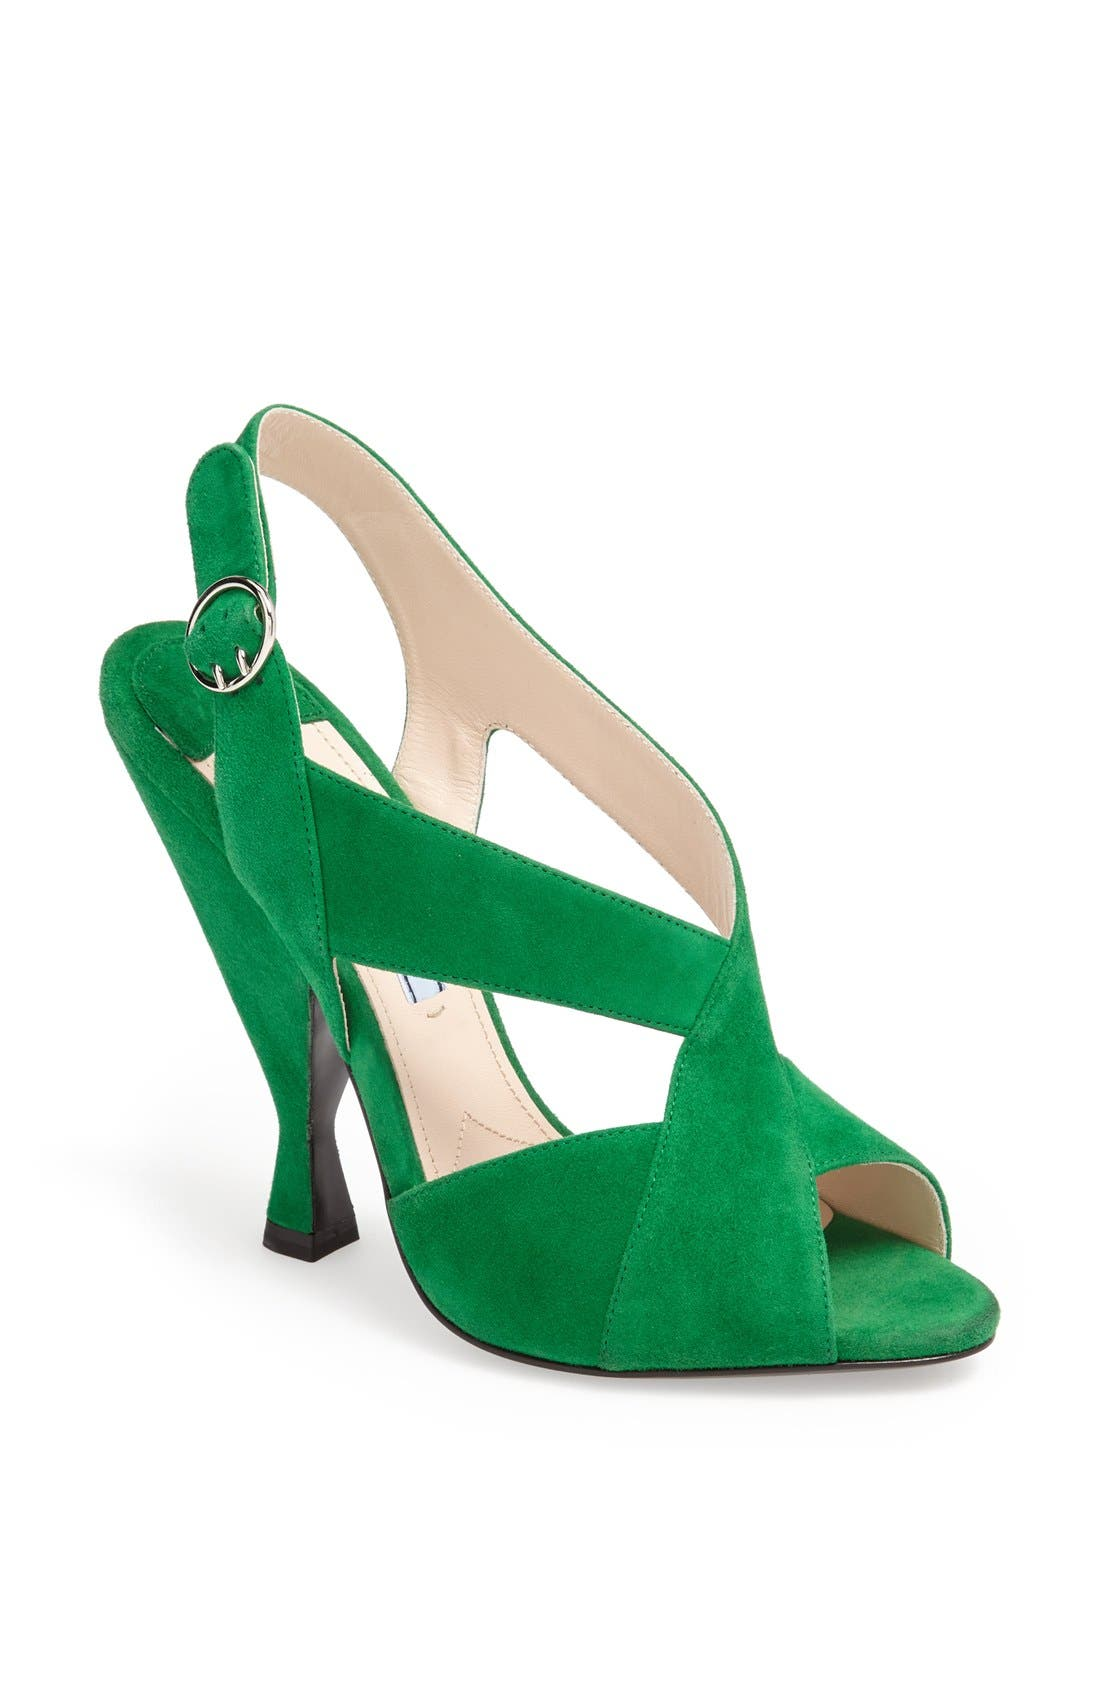 Alternate Image 1 Selected - Prada 'Hourglass' Slingback Sandal